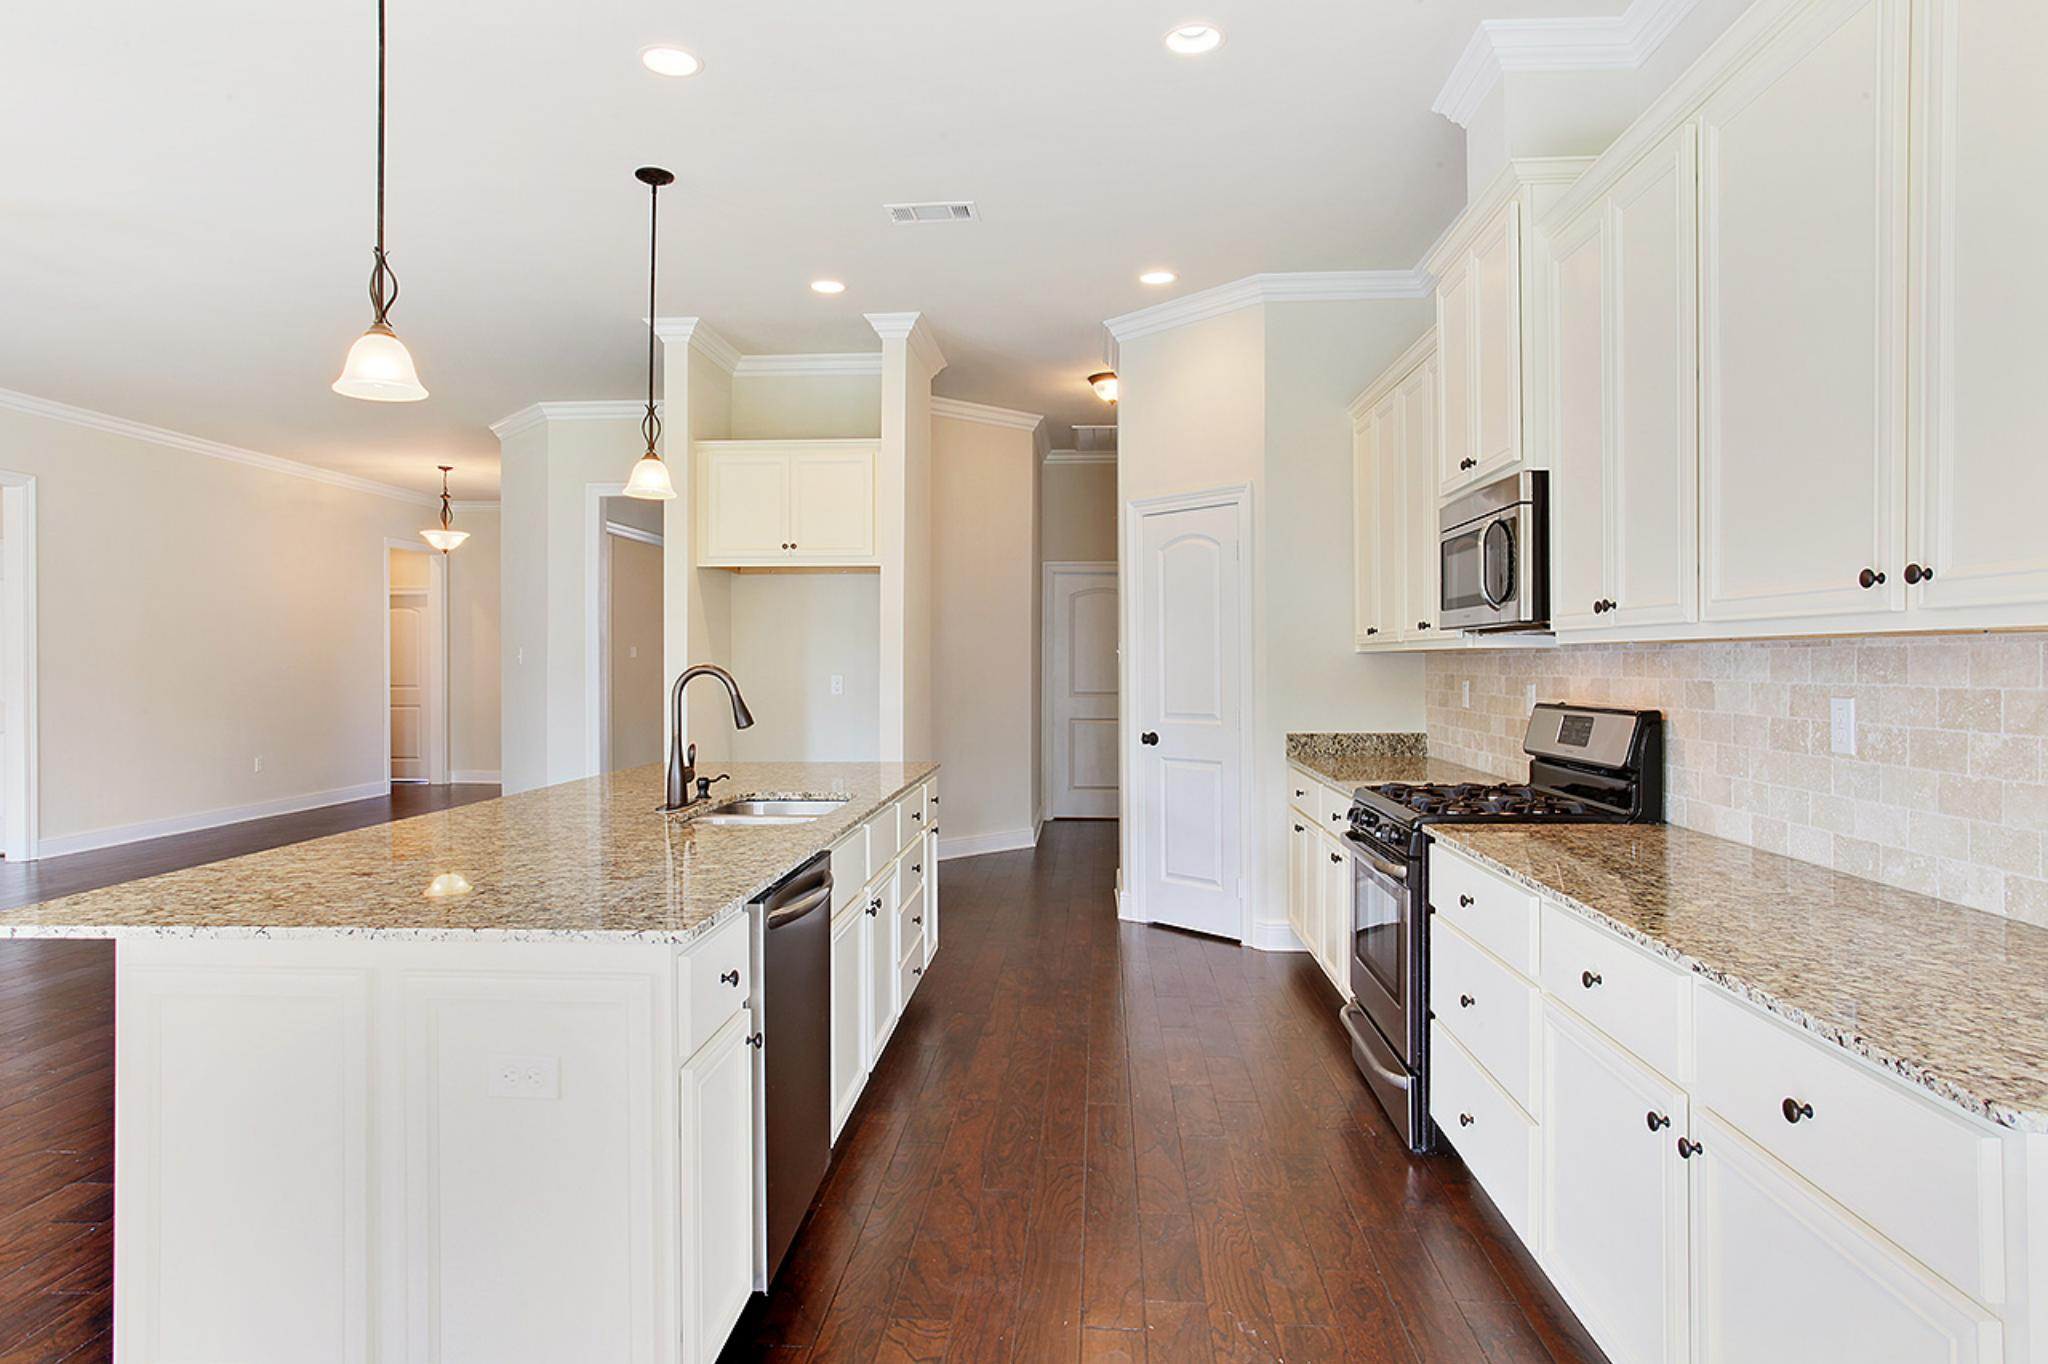 Sunrise Homes | New Homes New Orleans | Baton Rouge Home Builders